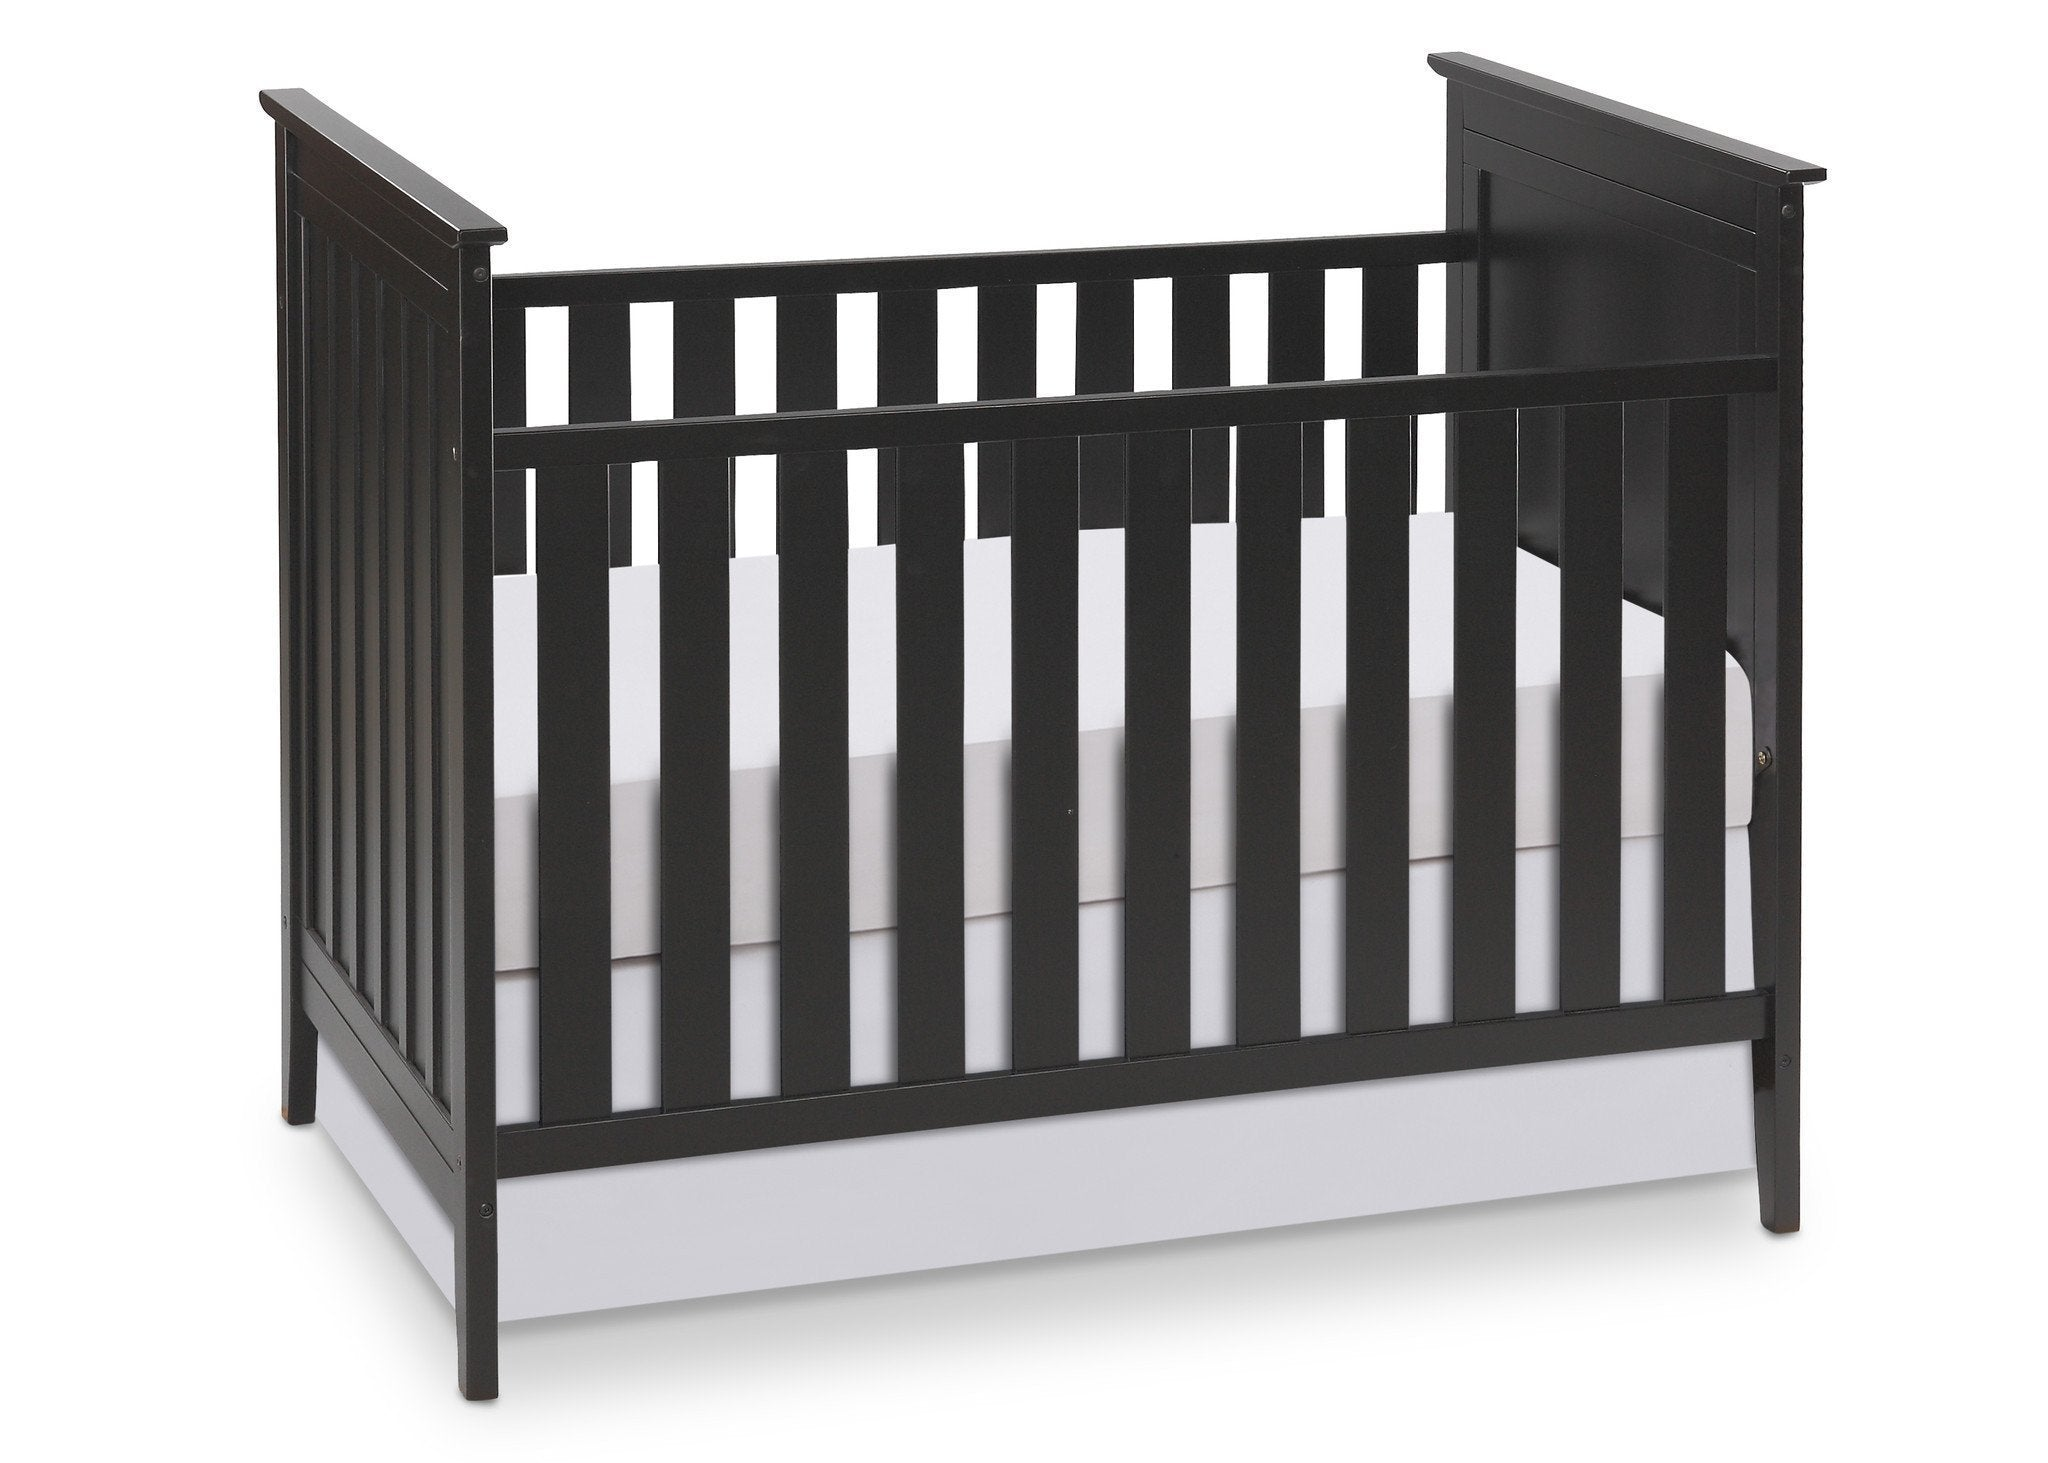 Simmons Kids Black (001) Melody 3-in-1 Crib, Crib Conversion a1a